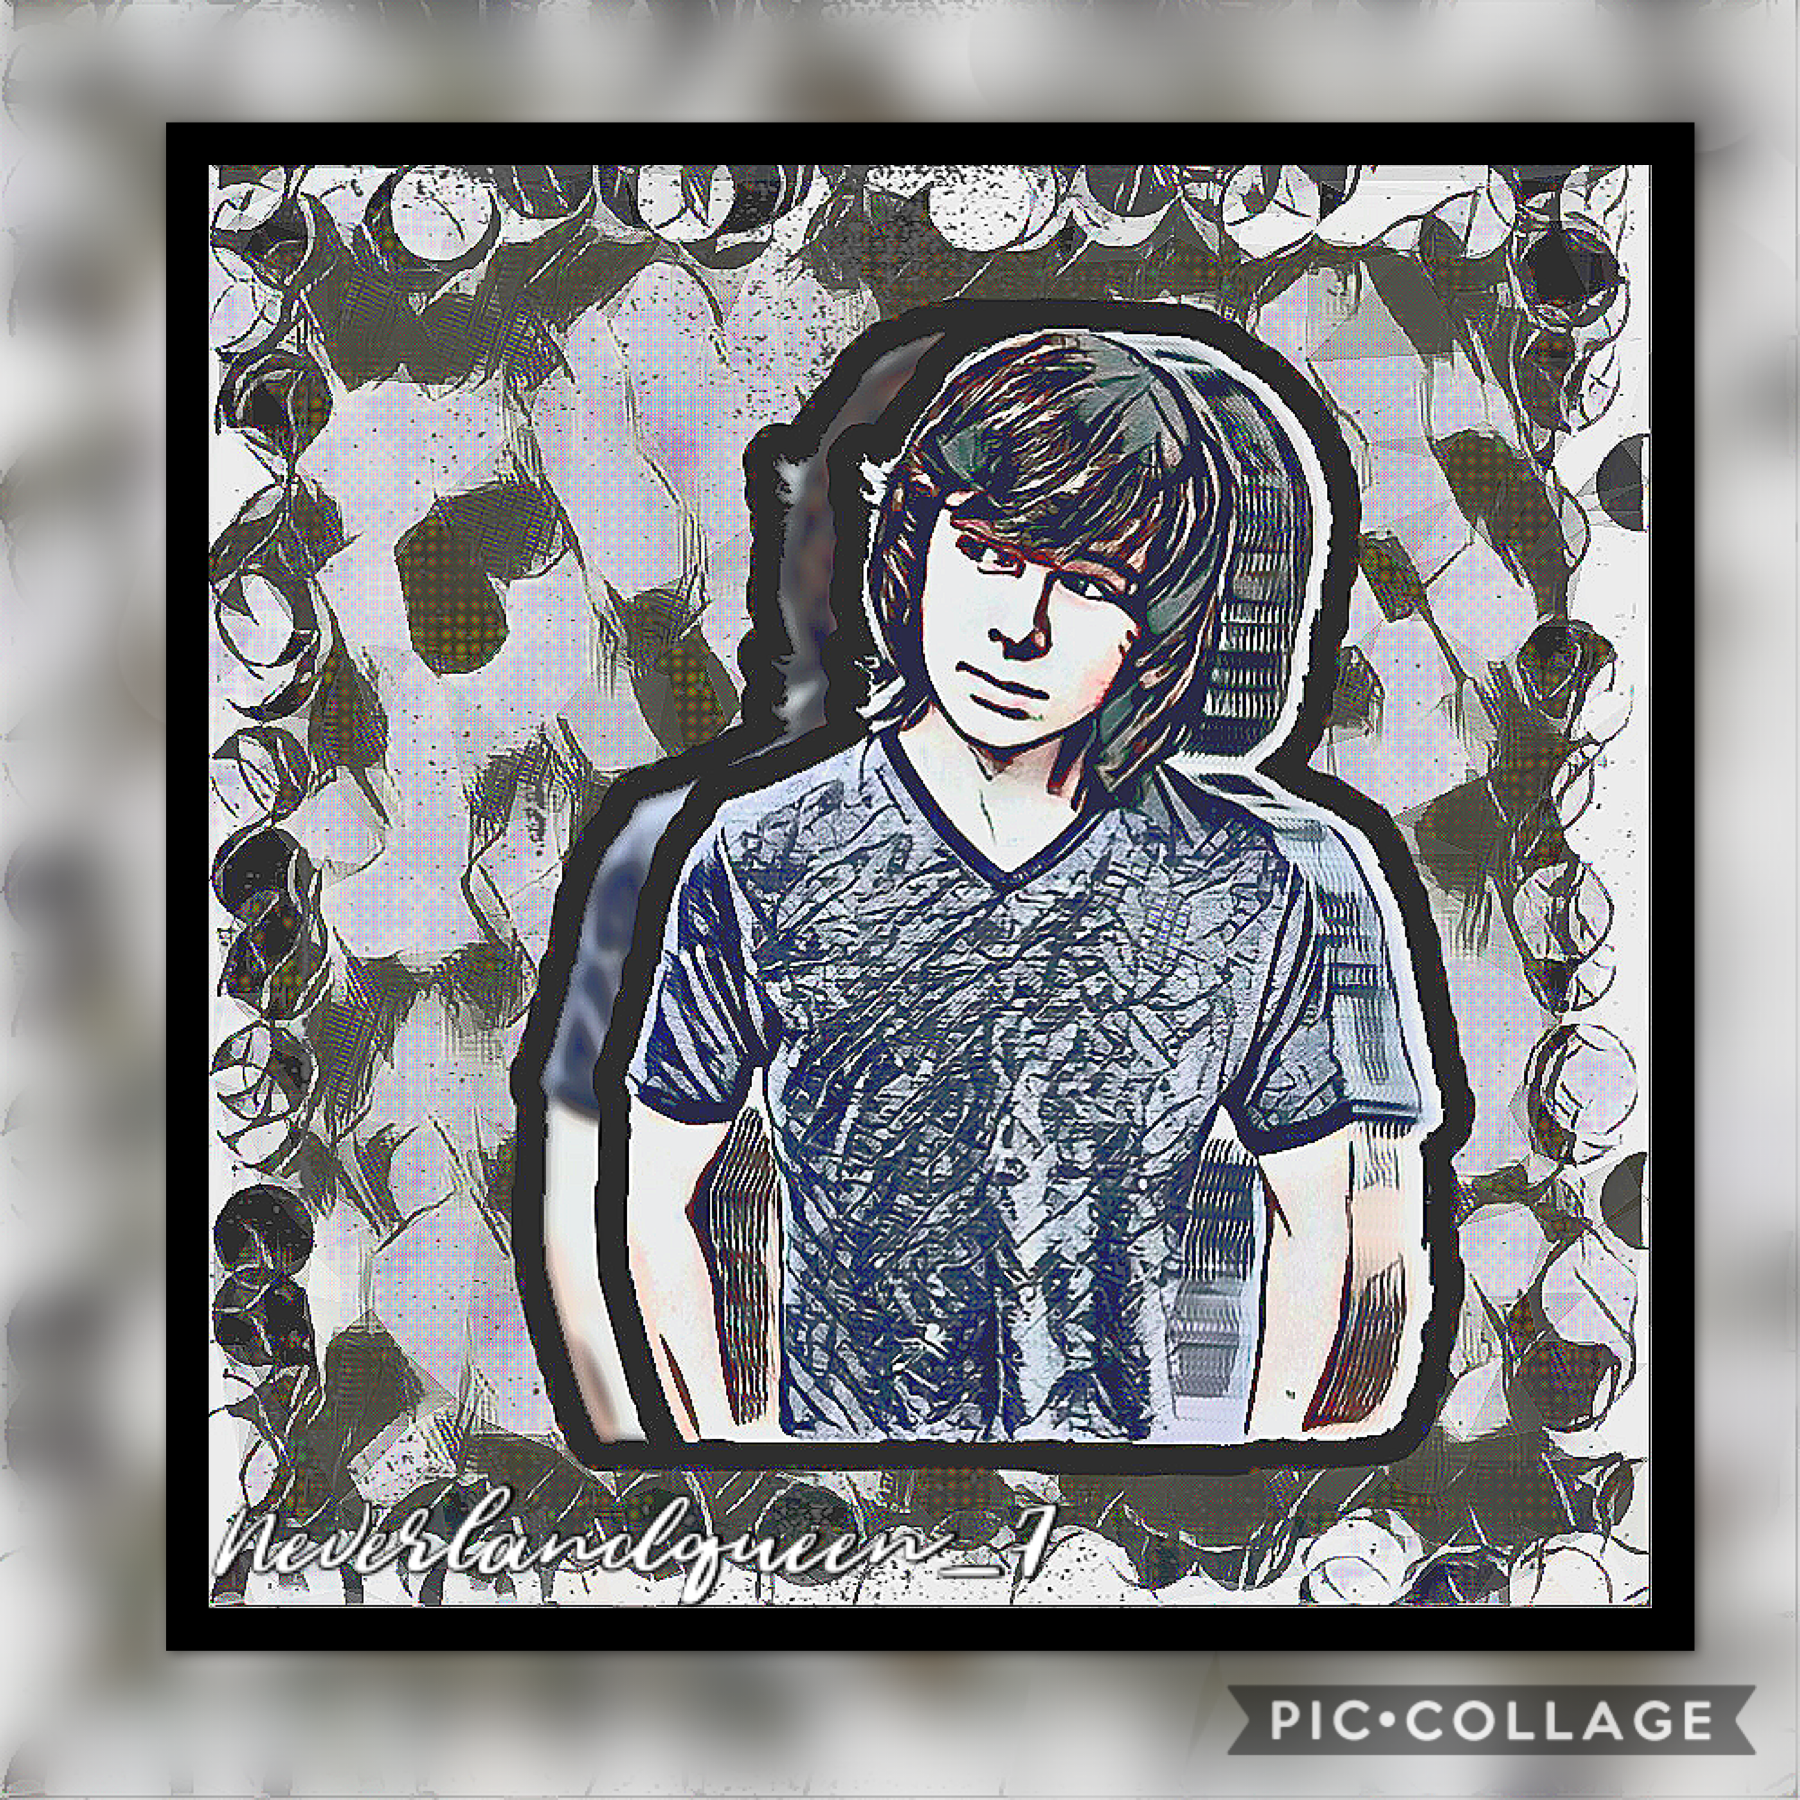 Tapp!!  straight outa Pics art lol 😂!!! Anyways enjoy this edit of my original character Ethan Barnes!!!   Rate/10😁🙌🏻